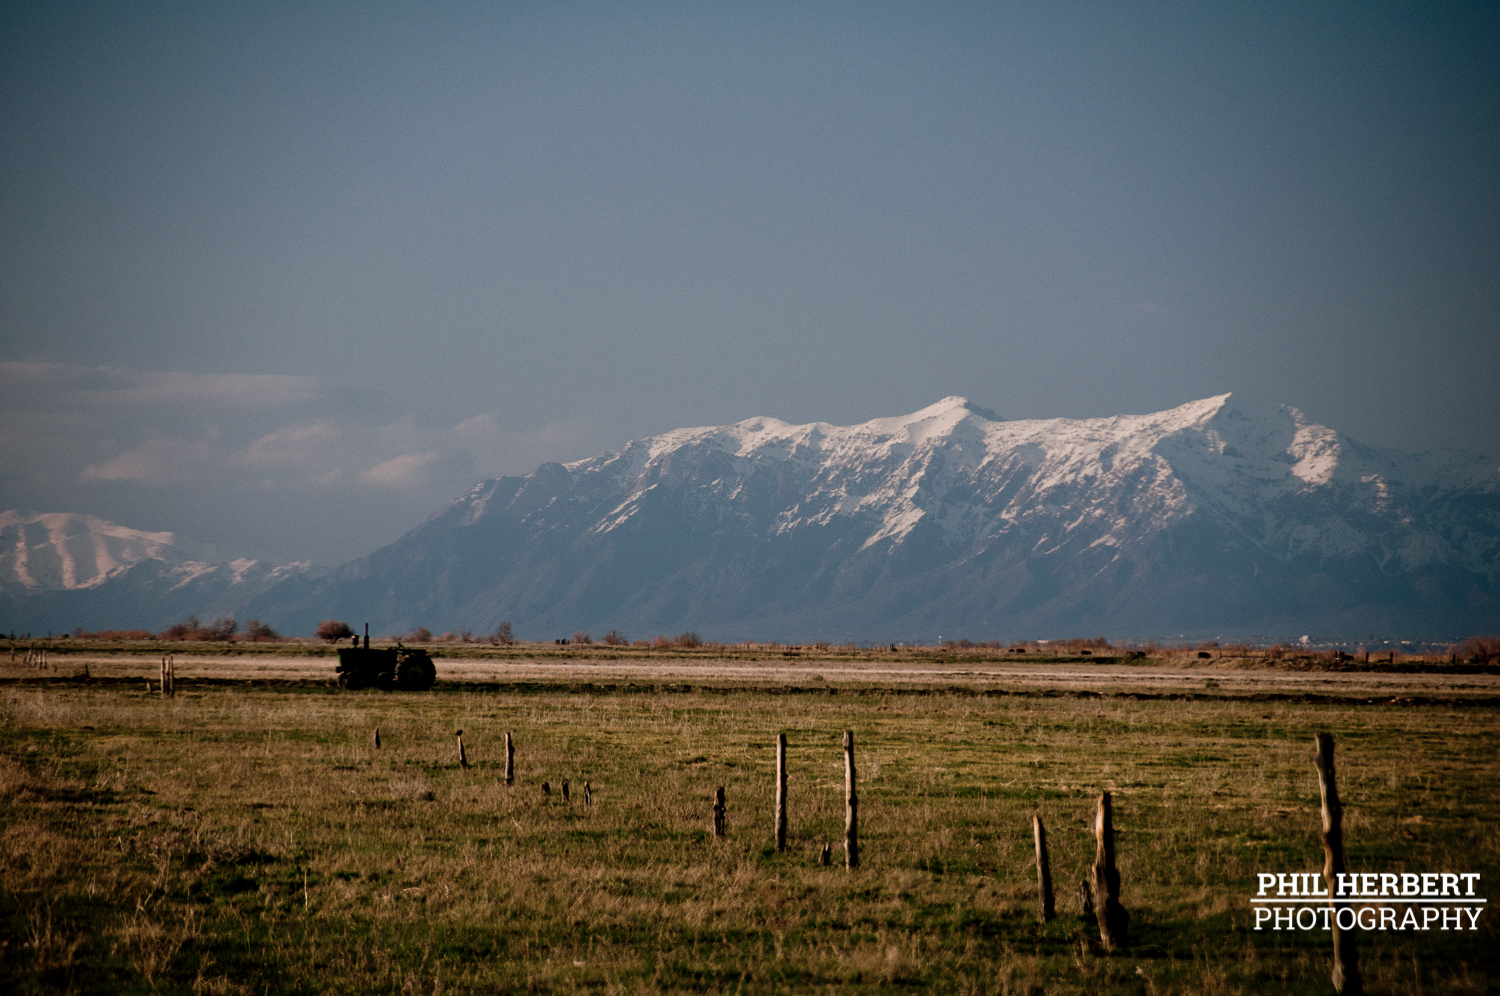 salt_lake_city_mountains.jpg